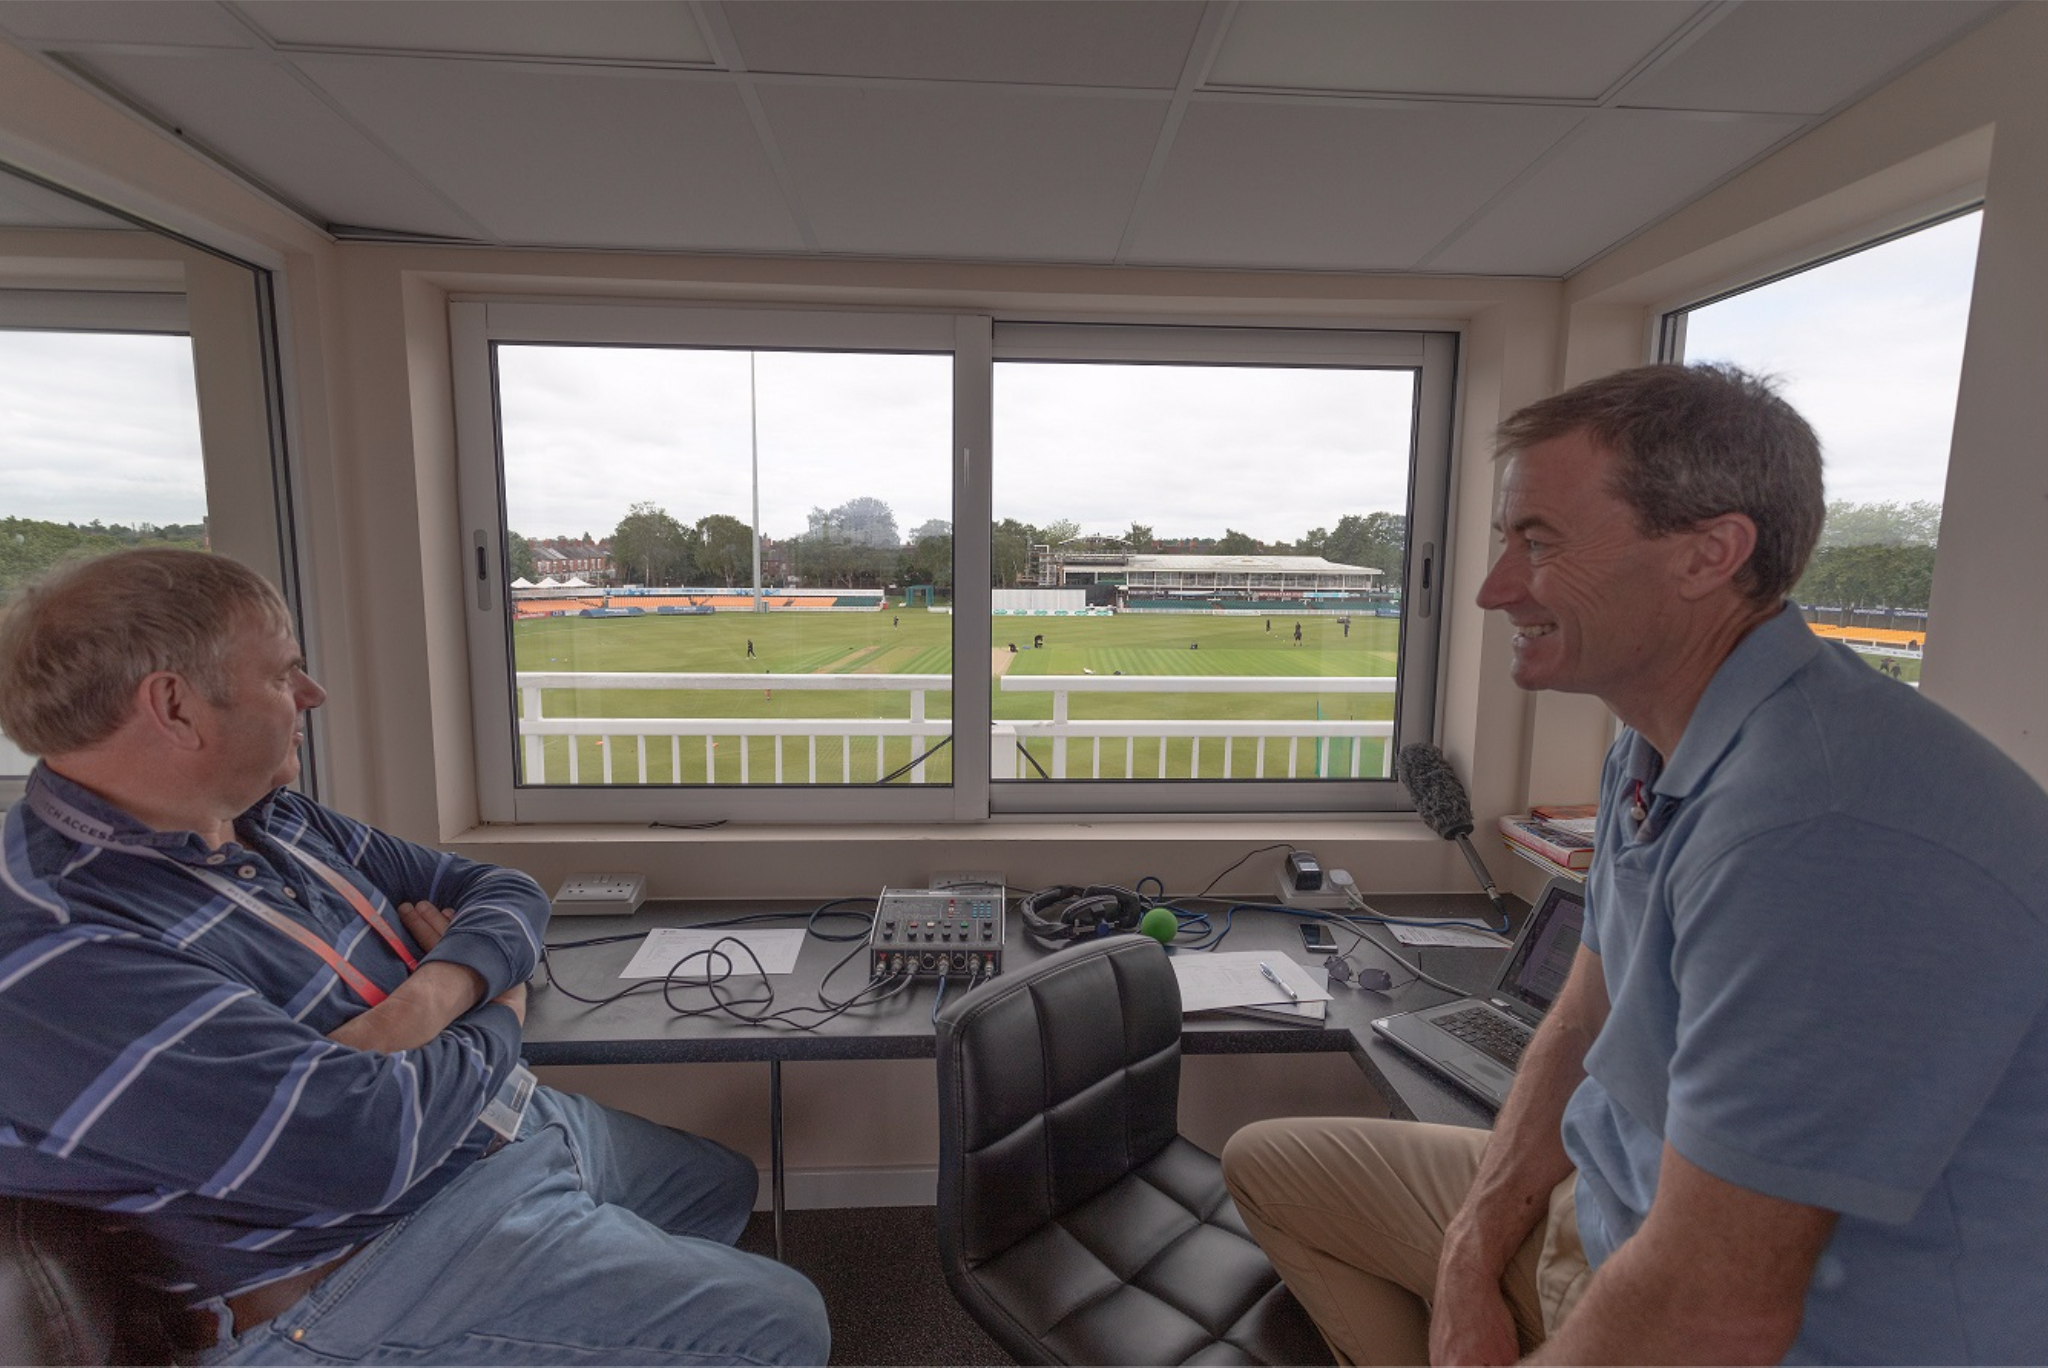 View from the commentary box… talking Casualty, Tinder – oh, and cricket